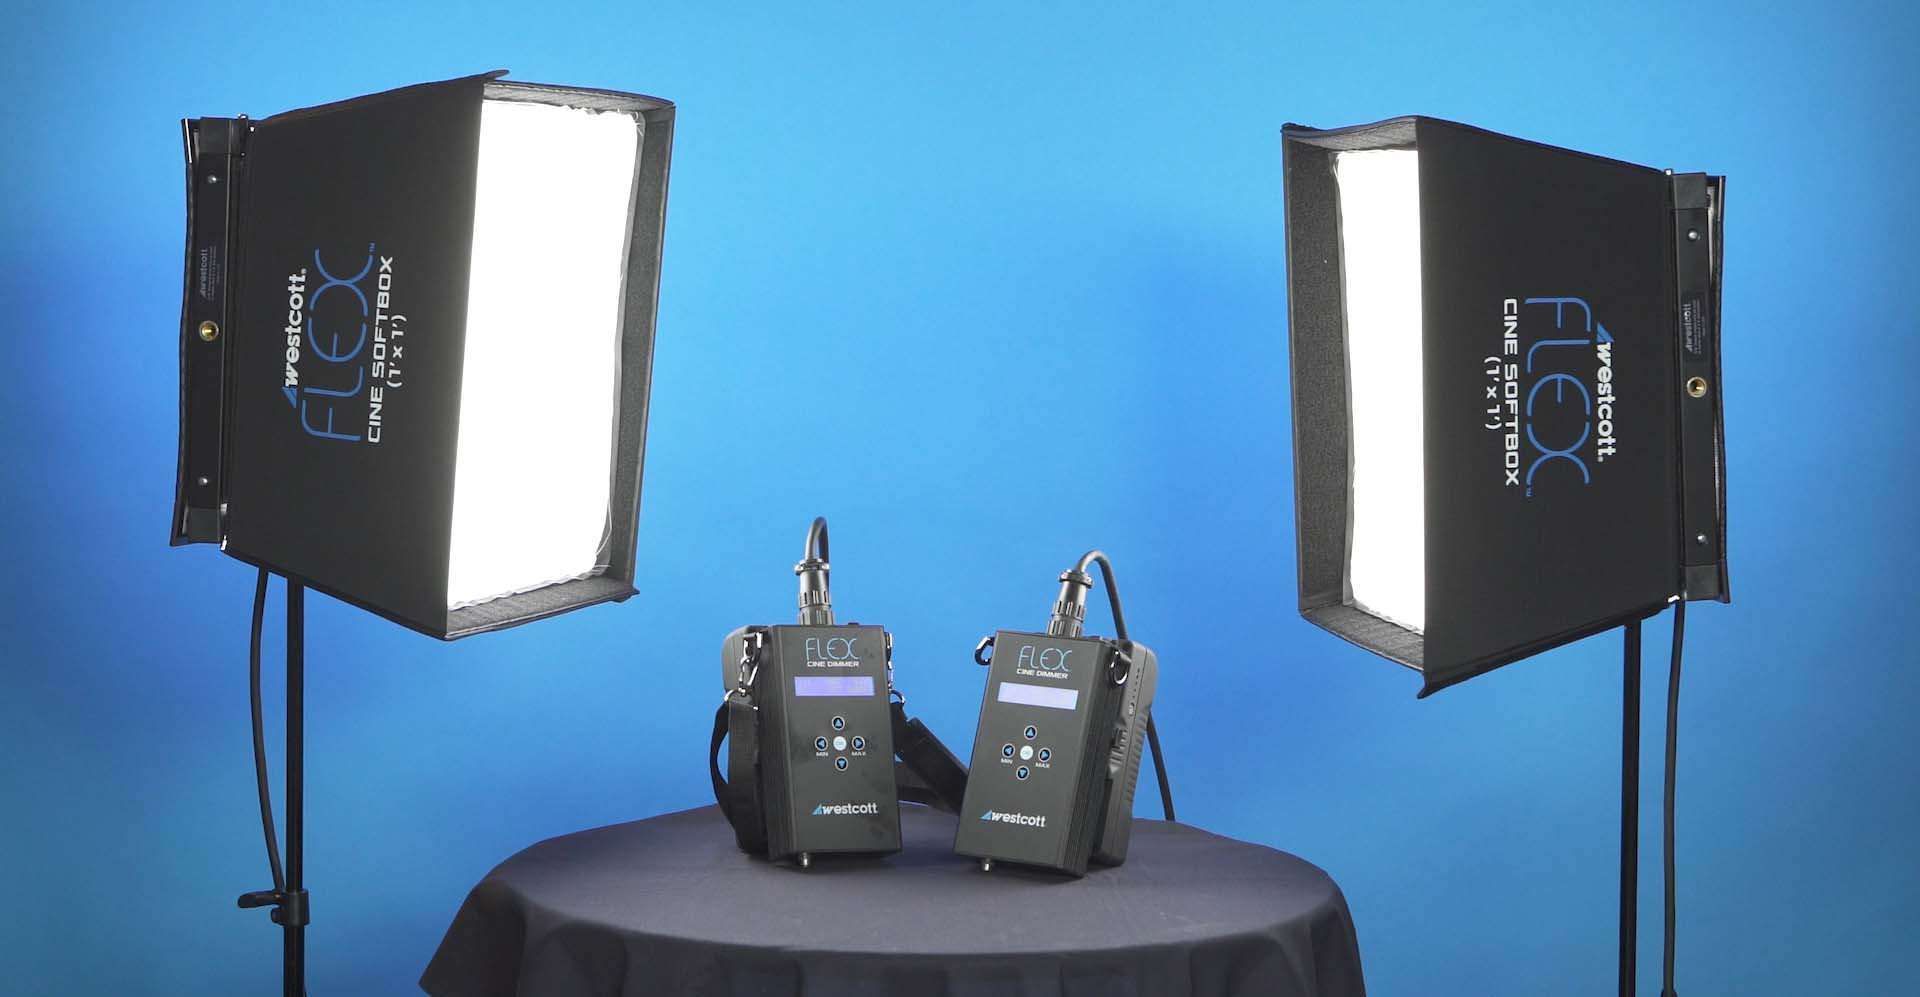 Reseña en video y demostración del Kit de Iluminación LED Westcott Flex Cine Travel